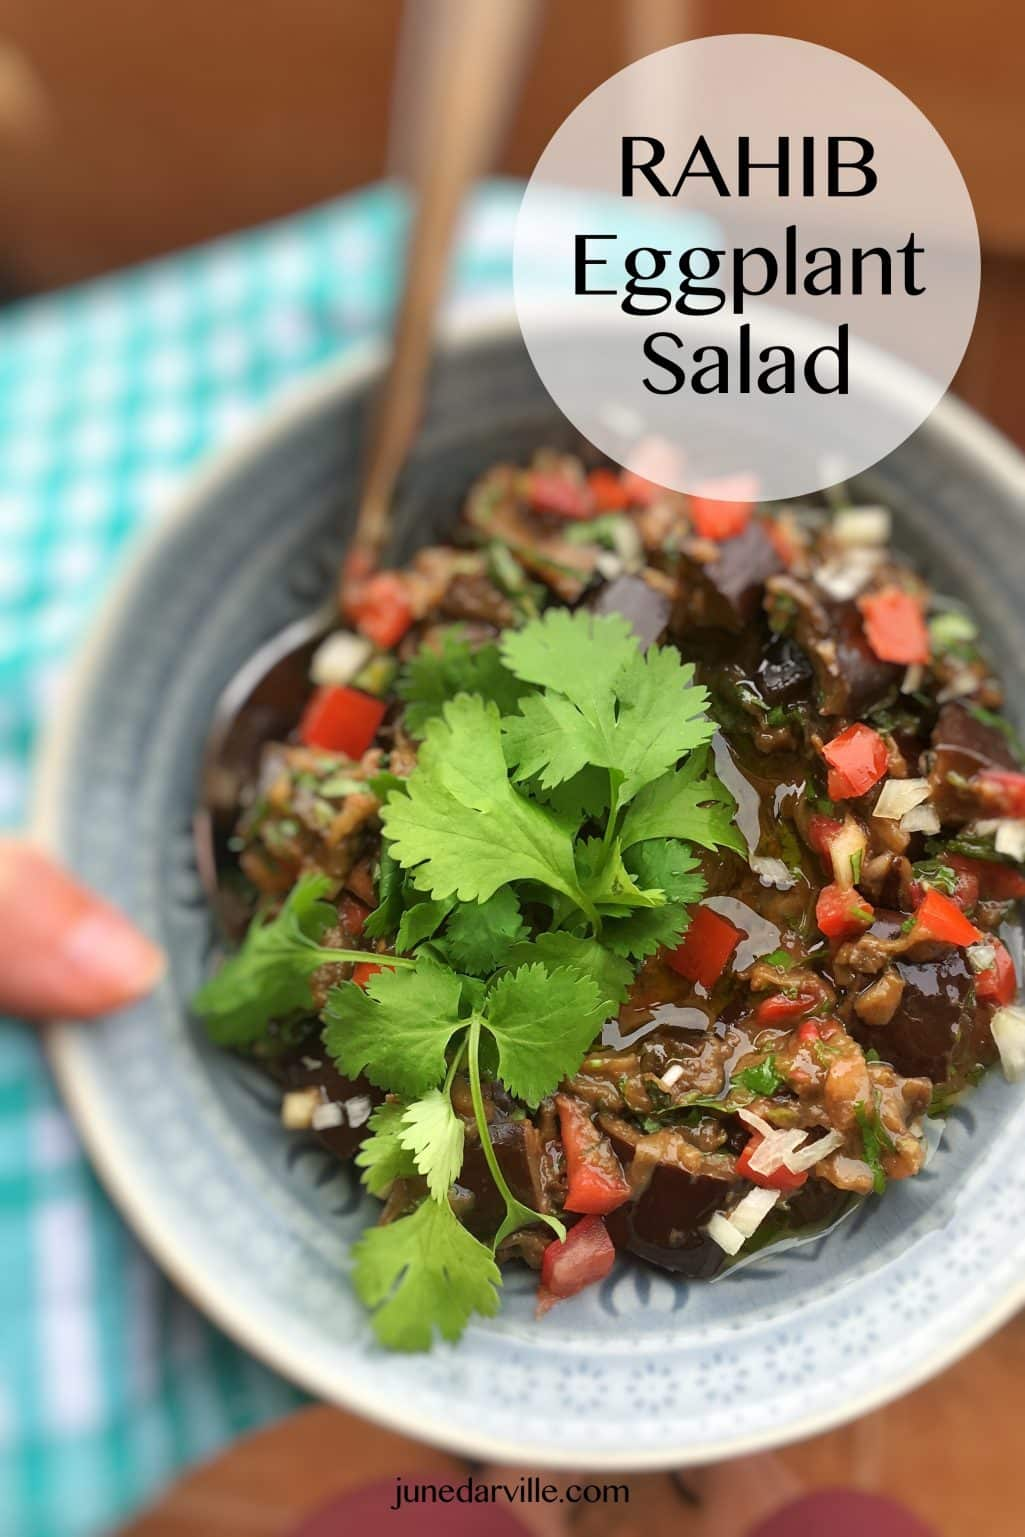 A fresh and easy rahib salad: this is an Eastern roasted eggplant salad and a great alternative for the classic baba ganoush!